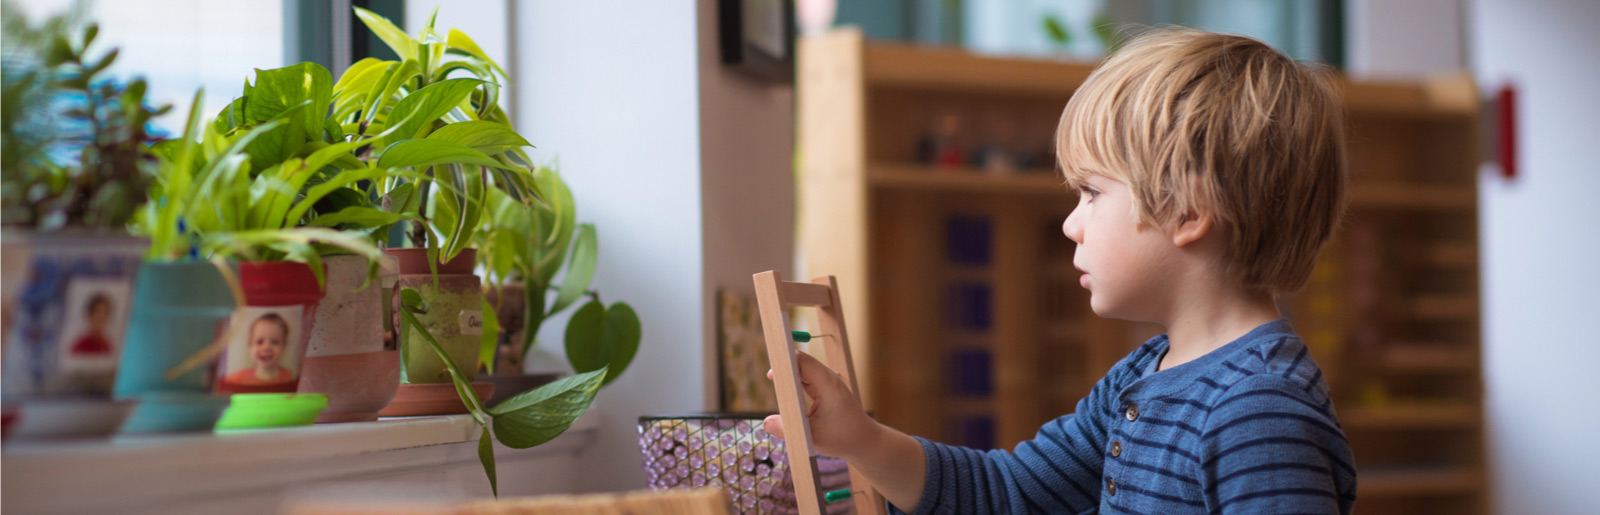 boy looking at growing plants on window sill